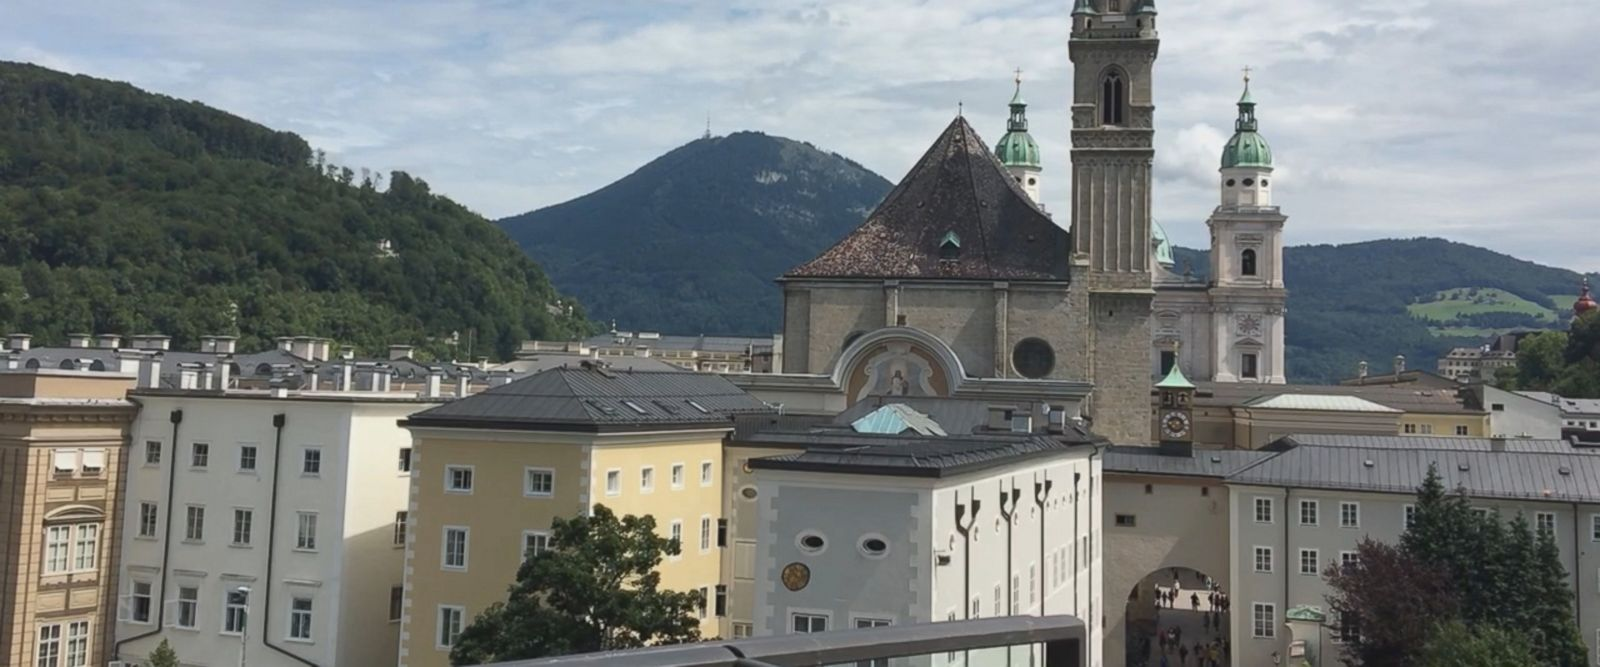 VIDEO: The Salzburg festival